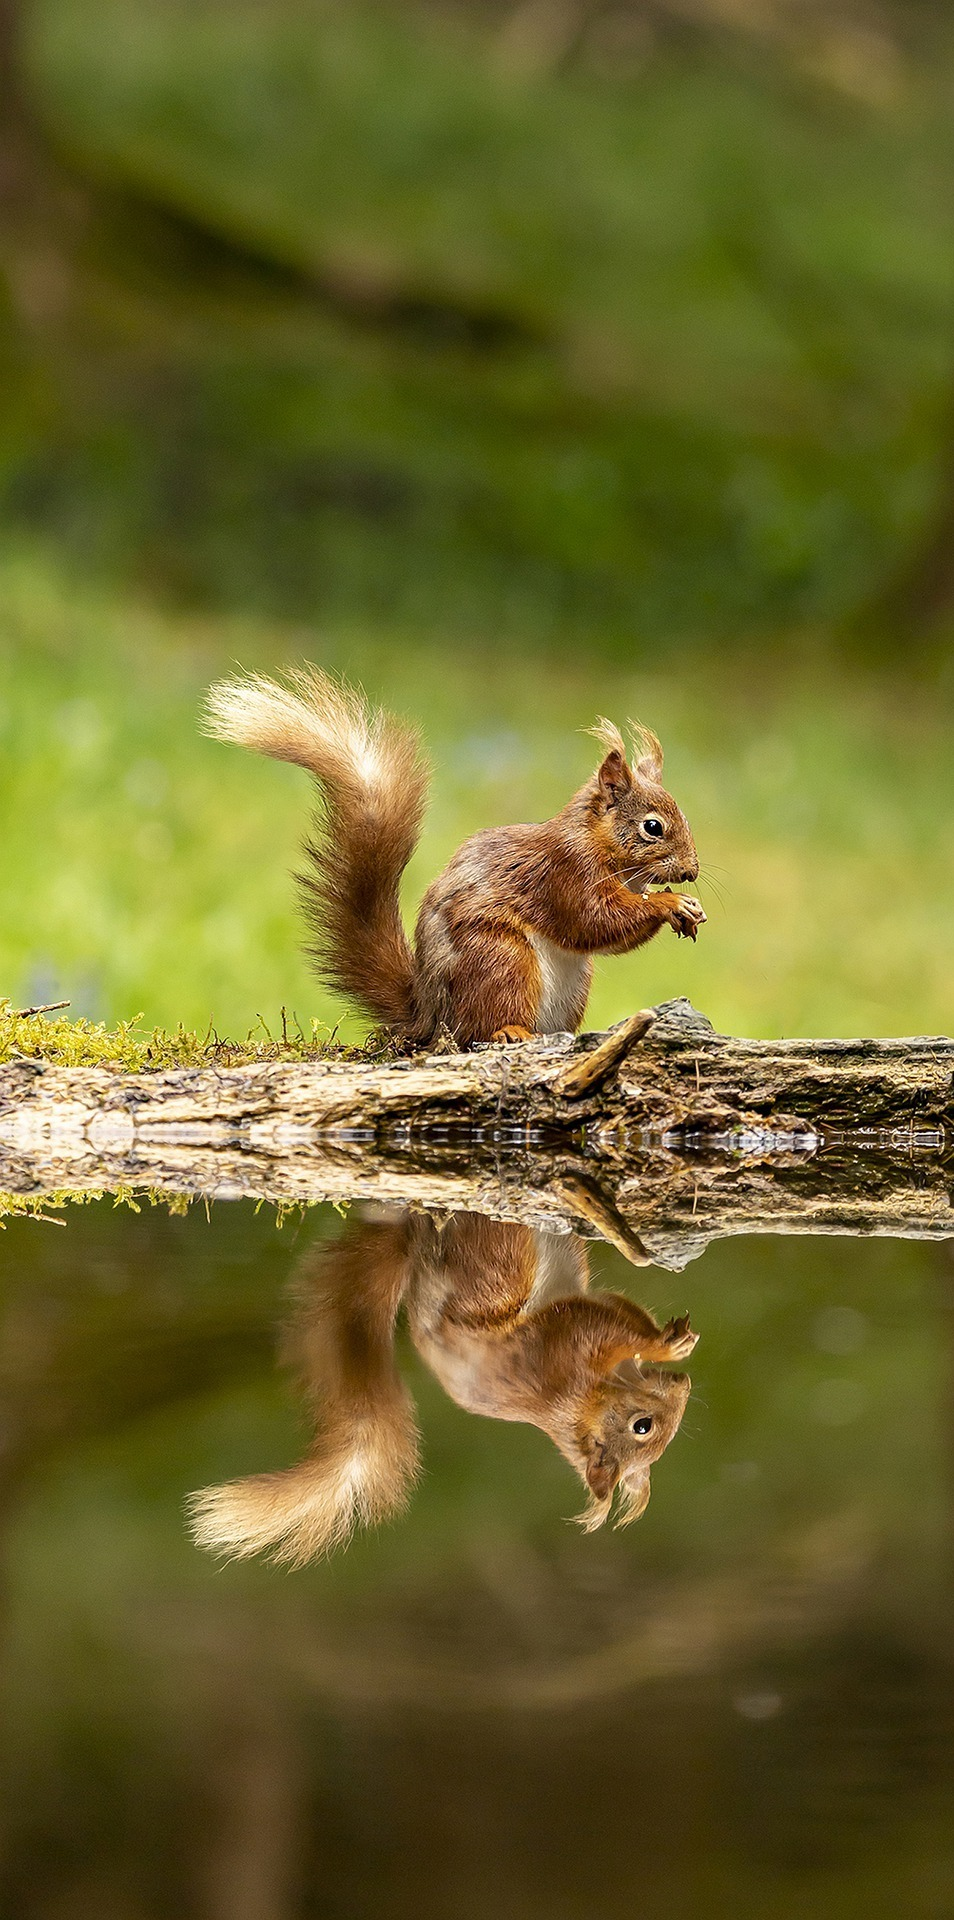 Amazing squirrel reflection capture.